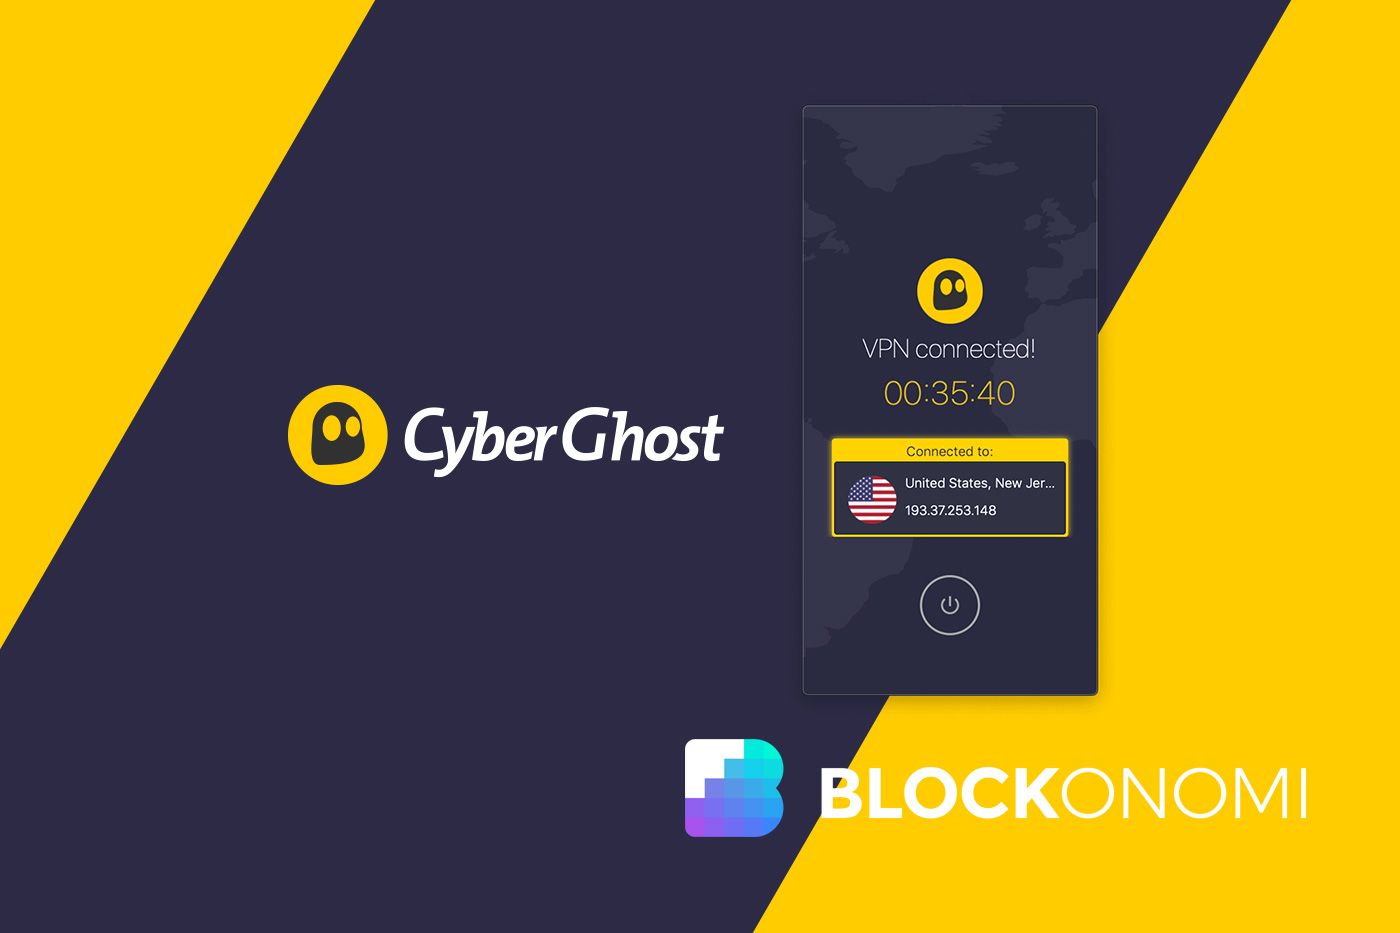 cyberghost vpn review - Cyberghost Vpn Bbc Iplayer Not Working